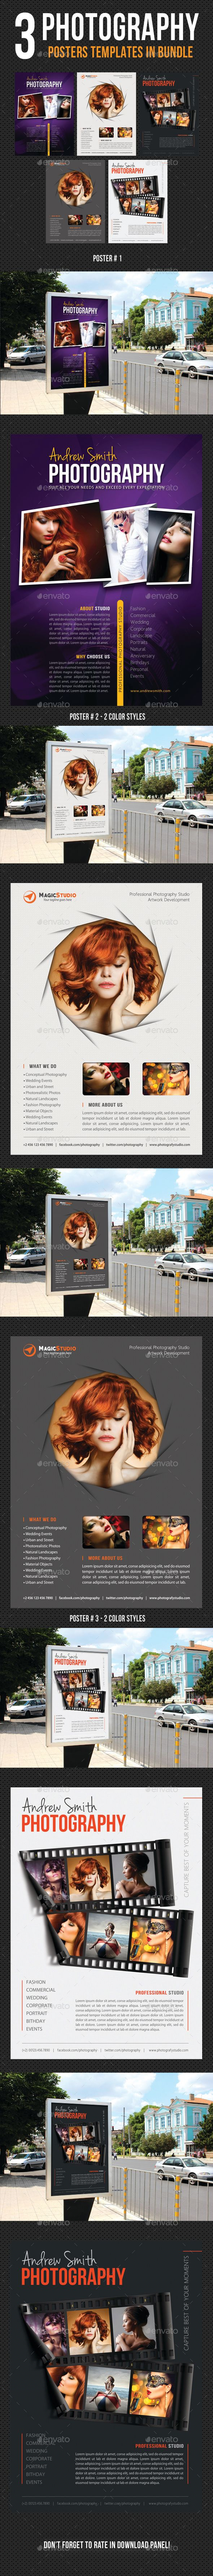 3 High impact Poster Template Layouts, perfect for business advertisement or product promotion! Pack included:    3 Poster Templat